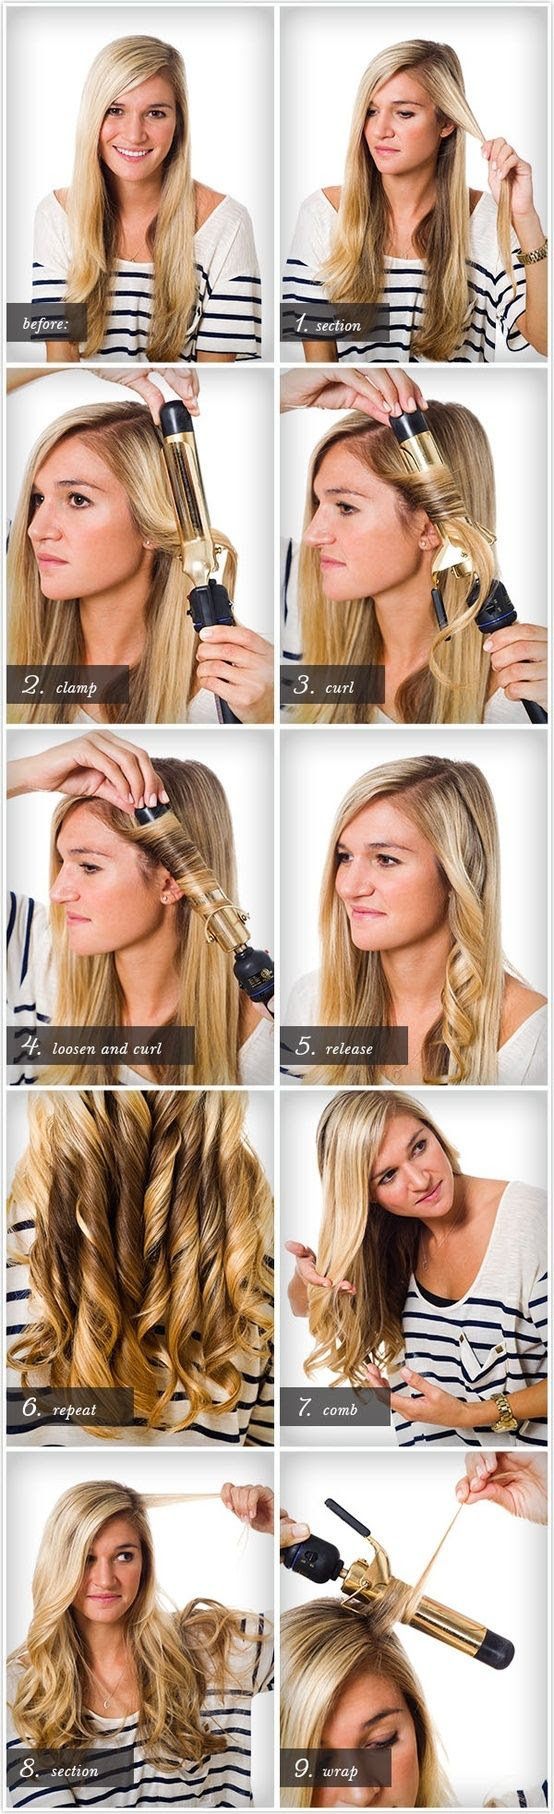 Another way to curl hair